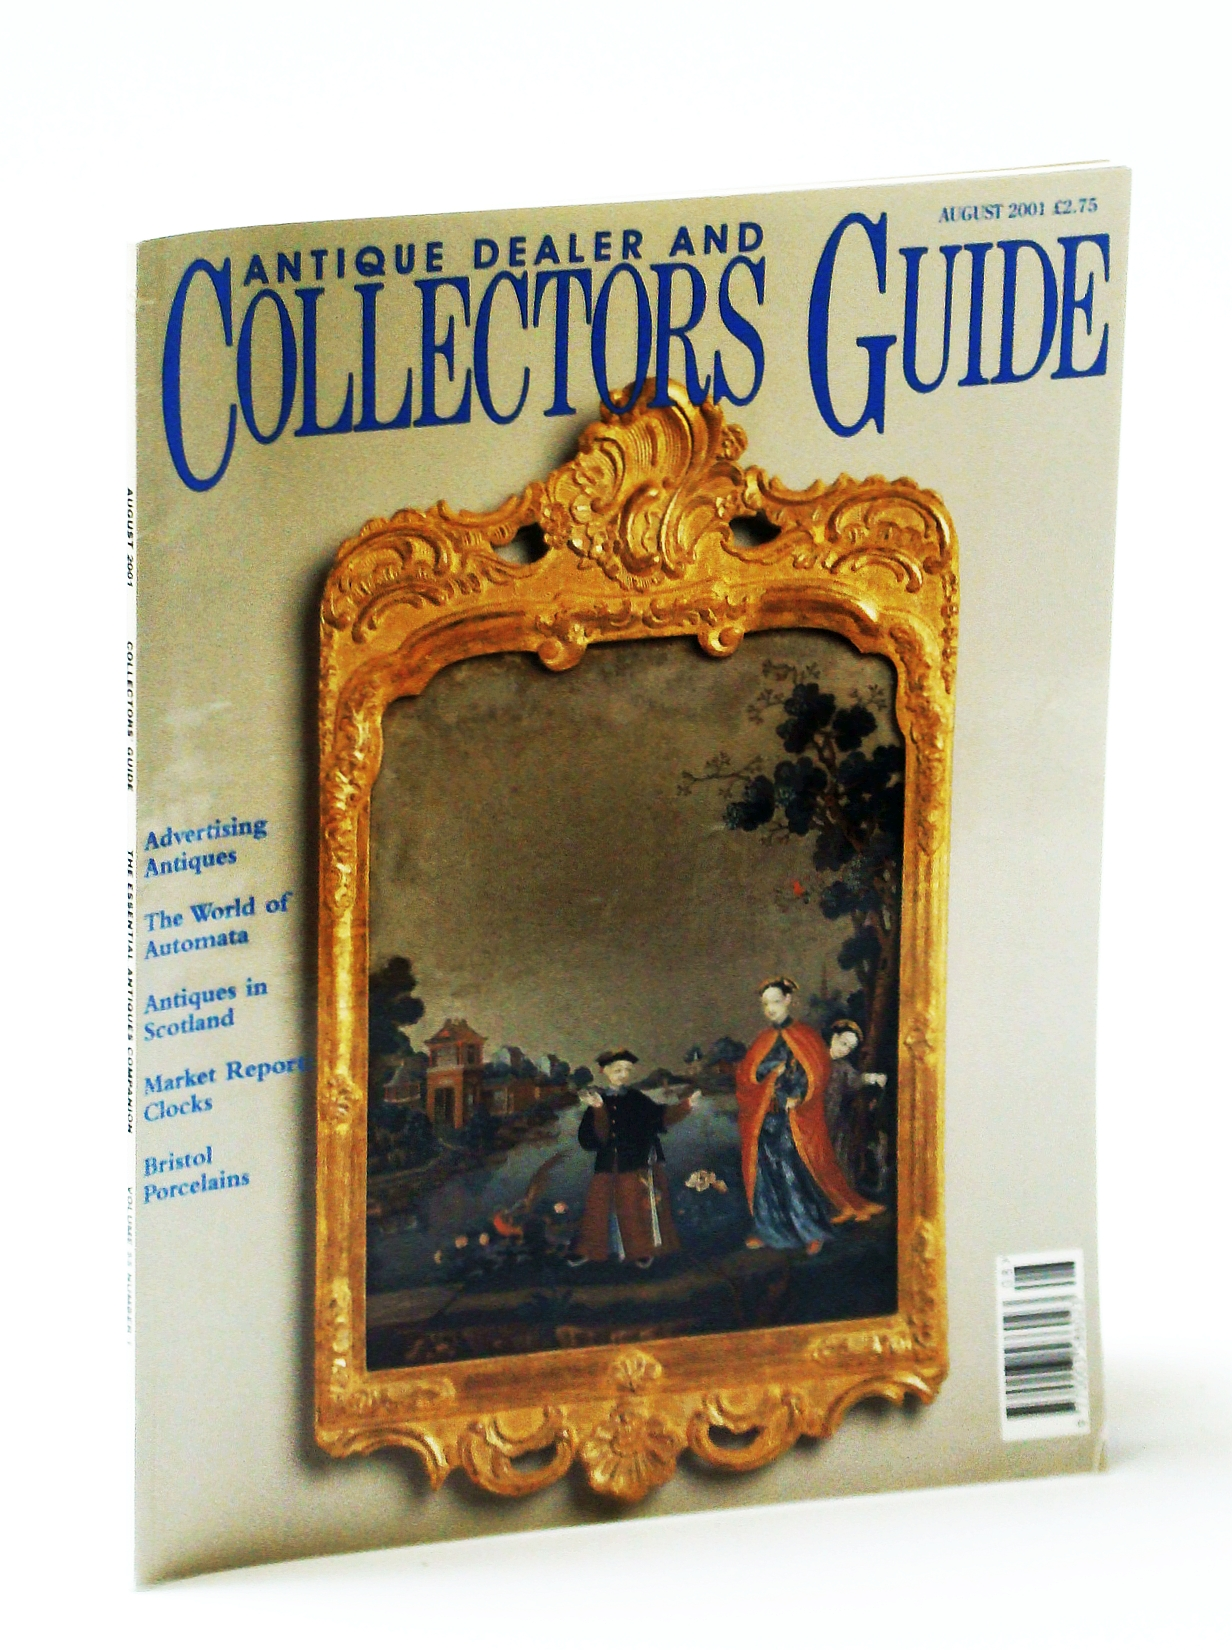 Image for Antique Dealer and Collectors Guide Magazine, August (Aug.) 2001 - The Art of Commerce / John Frederick Tayler